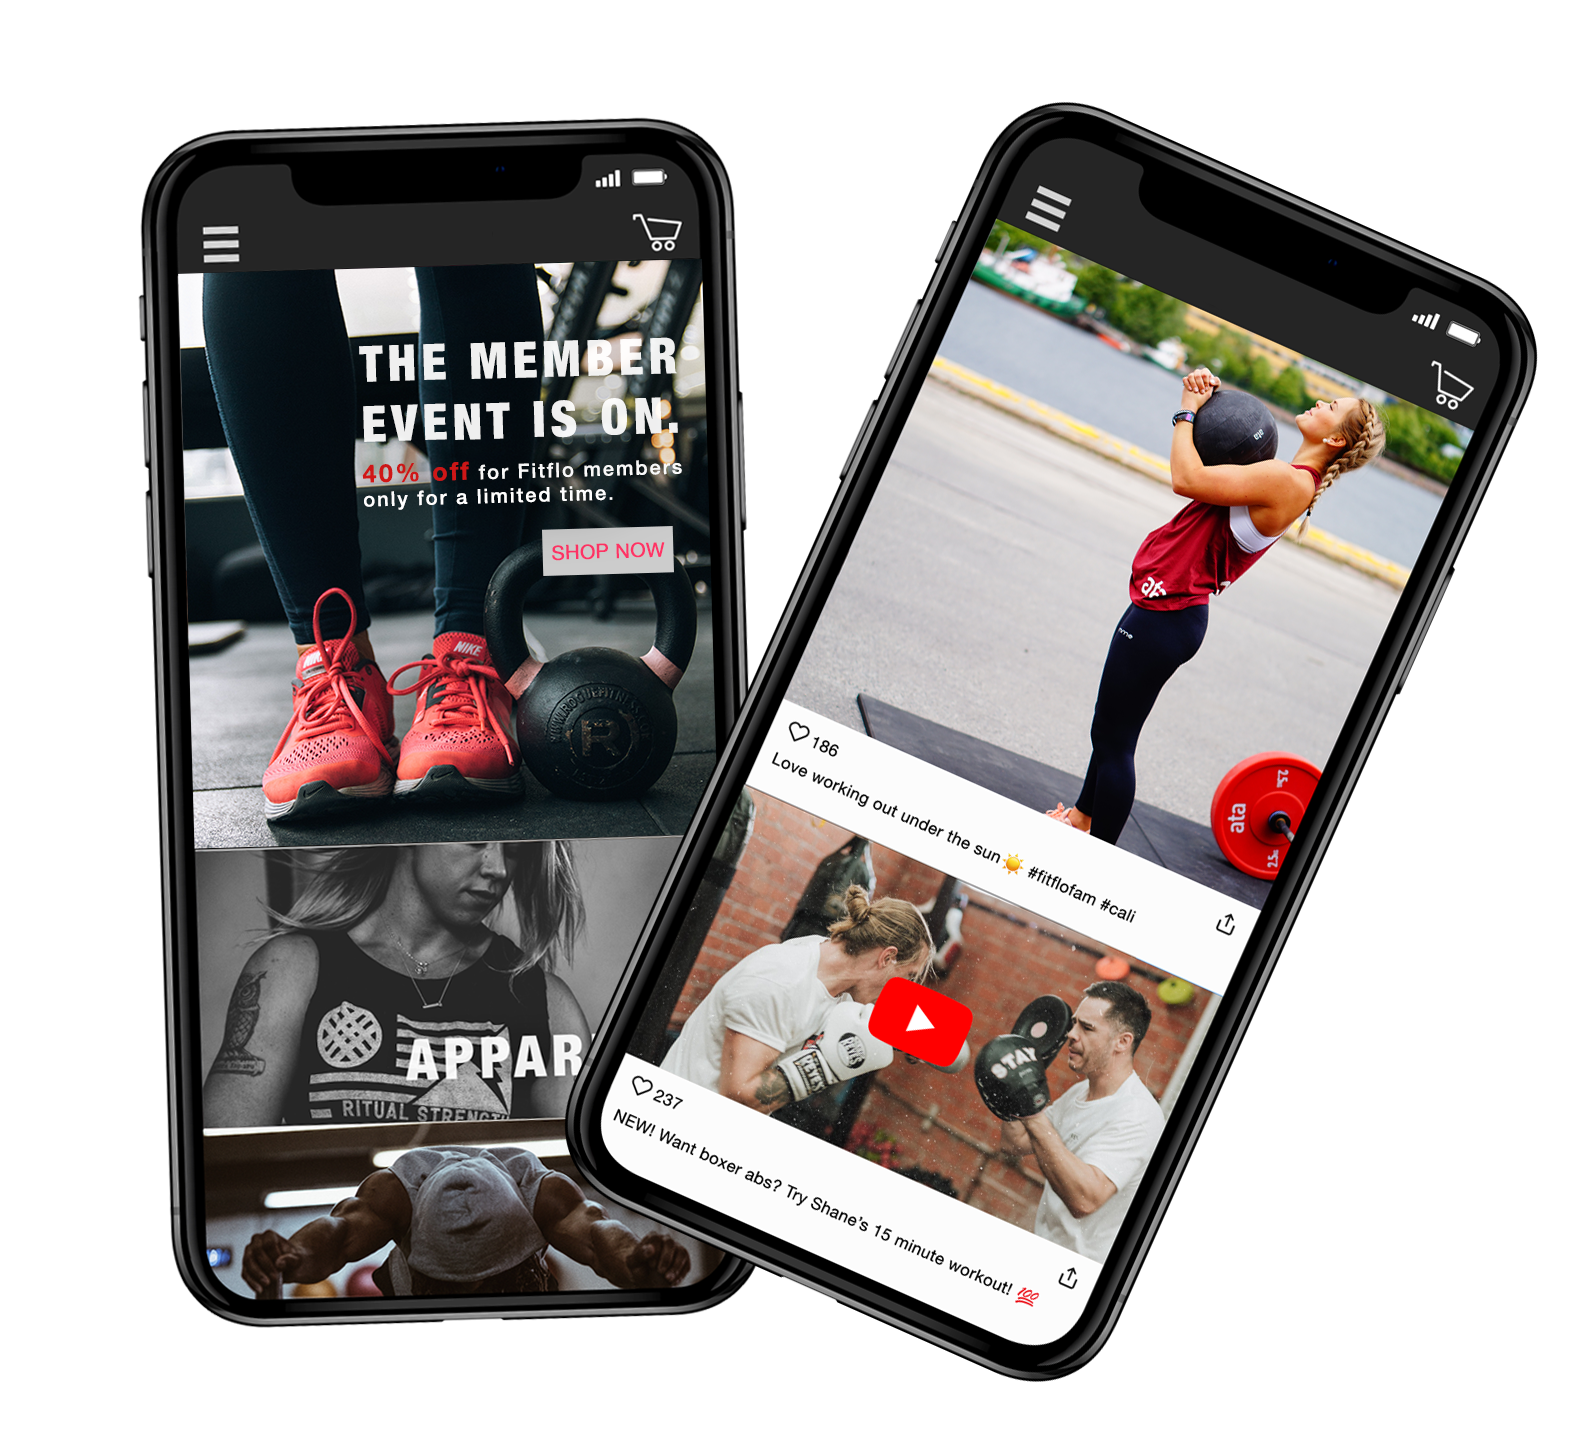 Mobile first headless ecommerce